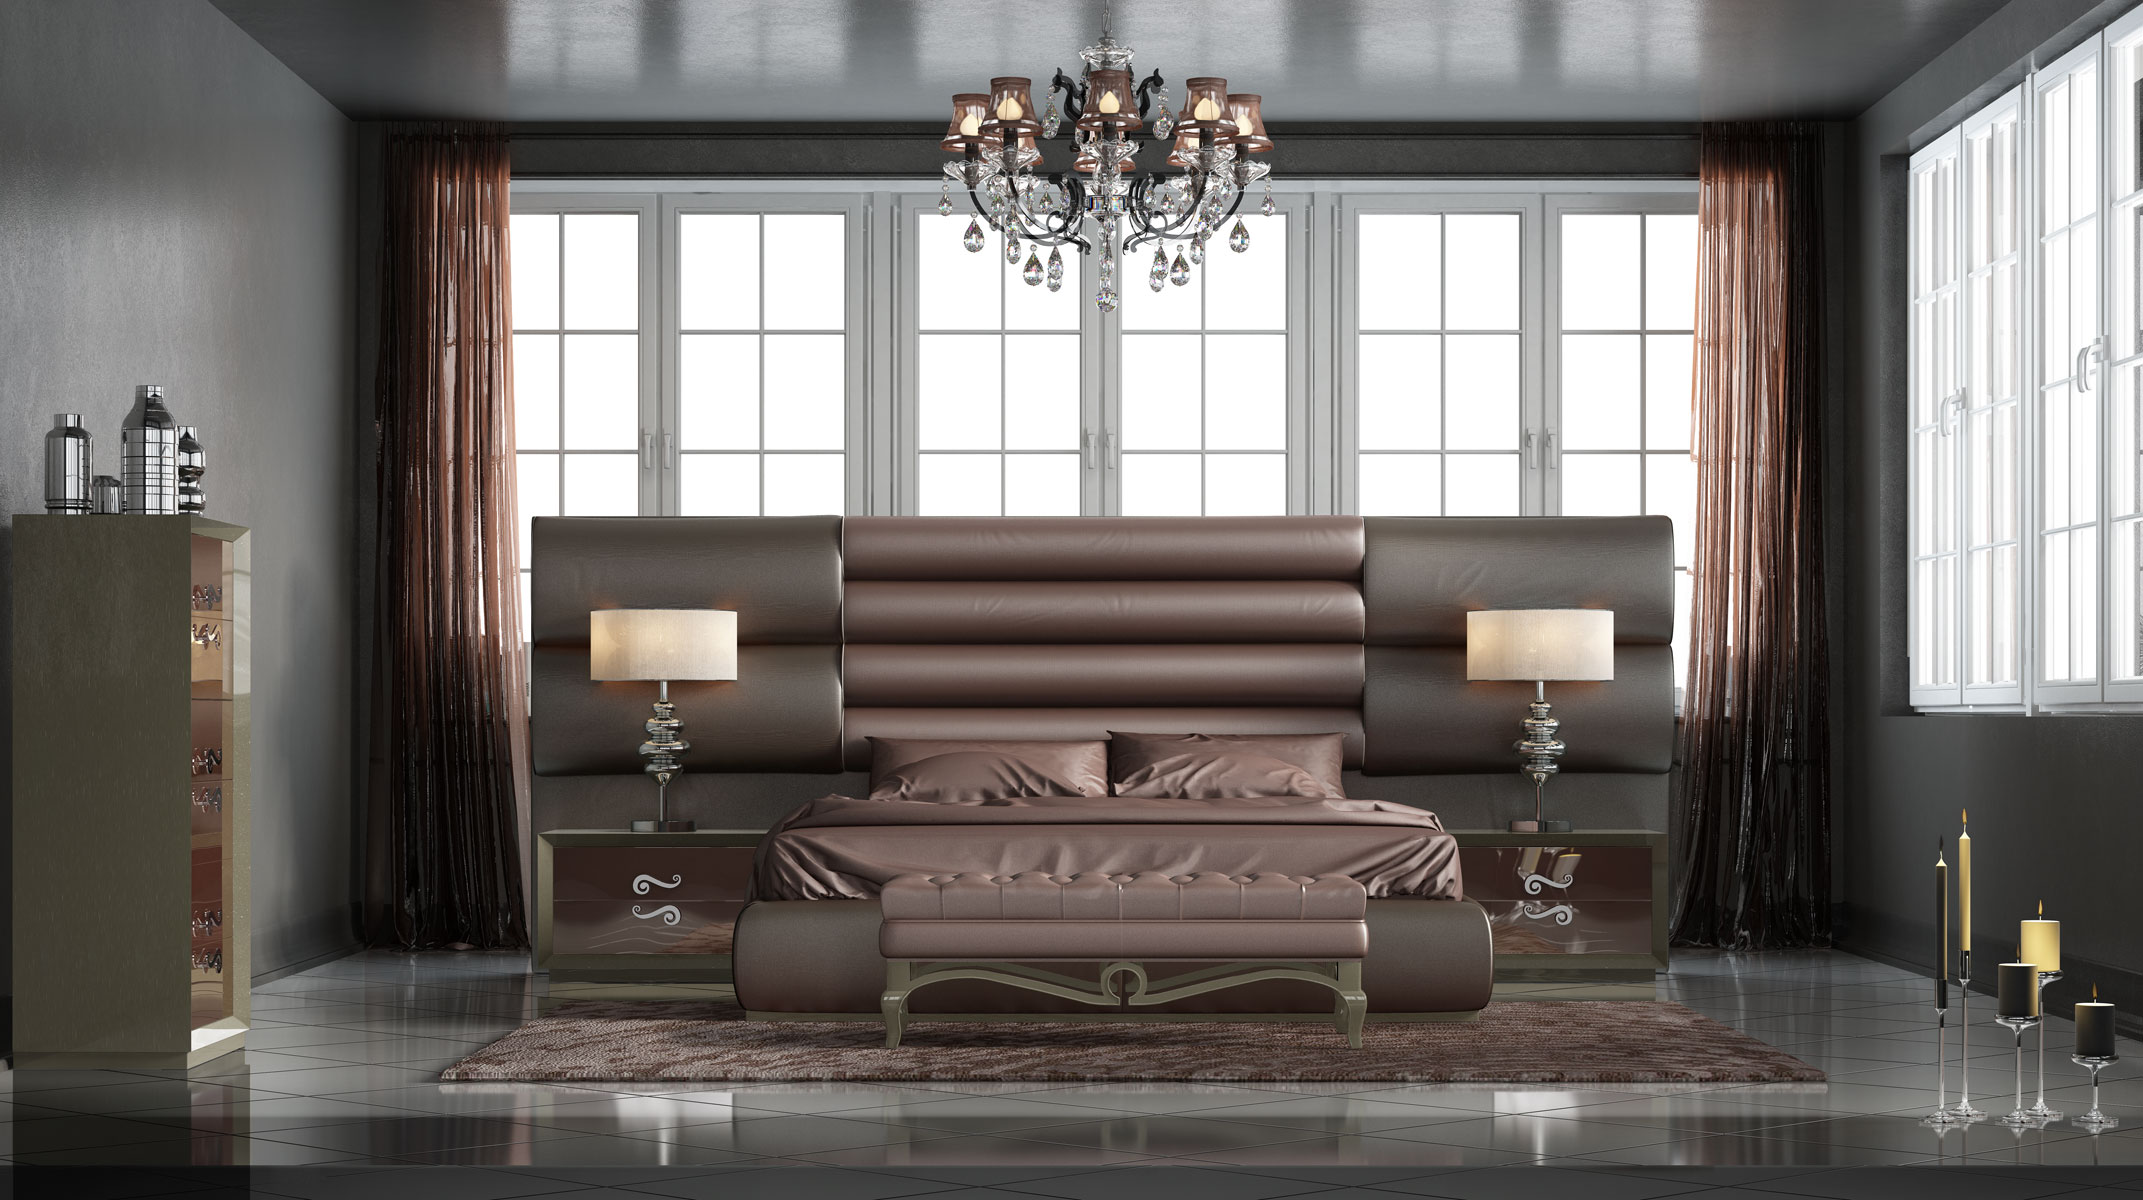 Groovy Refined Wood High End Modern Furniture Feat Full Tufted Upholstery Home Interior And Landscaping Ferensignezvosmurscom